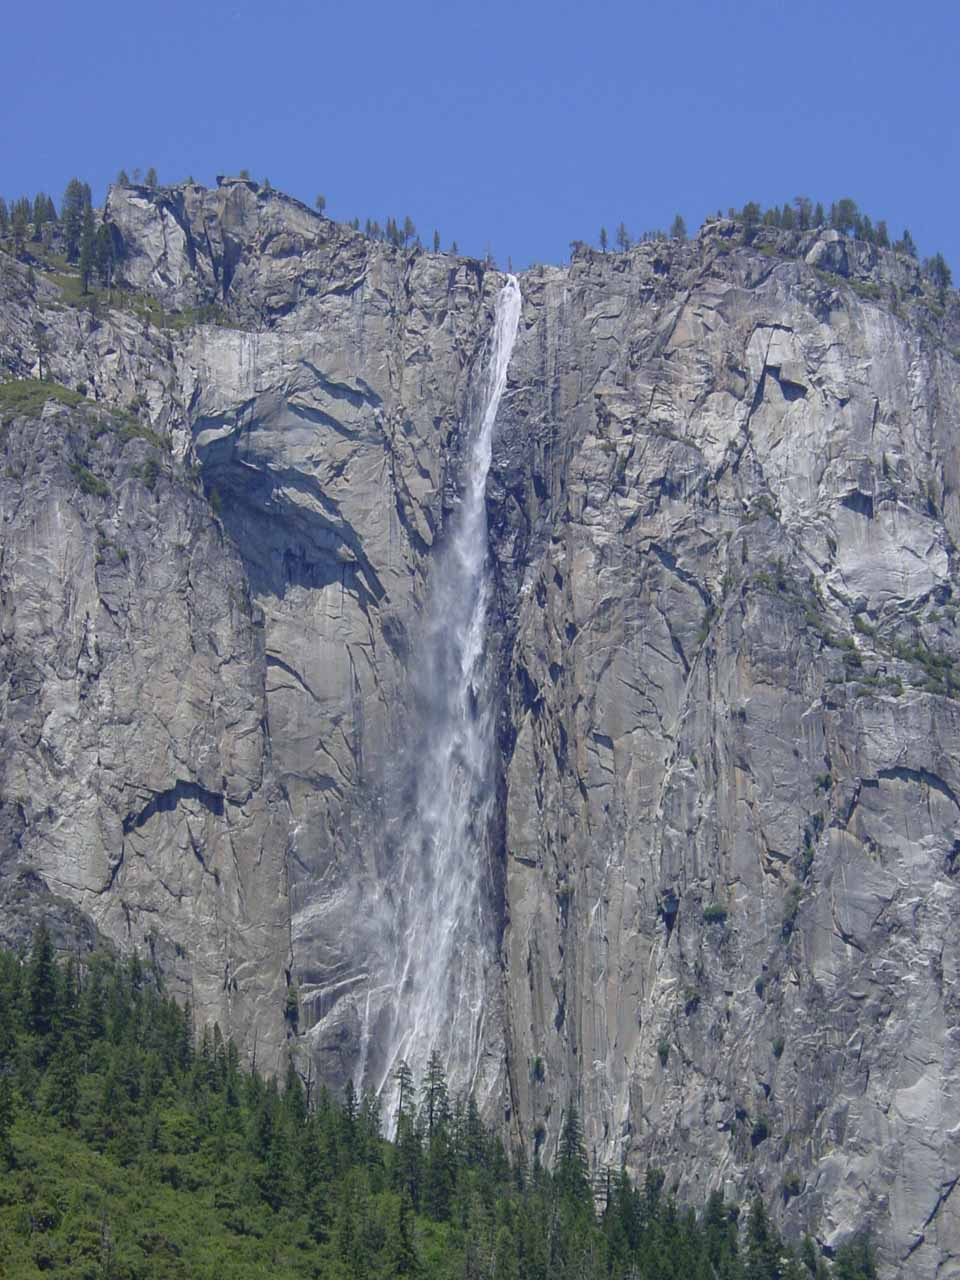 Ribbon Falls seen from the Southside Drive in late May 2002